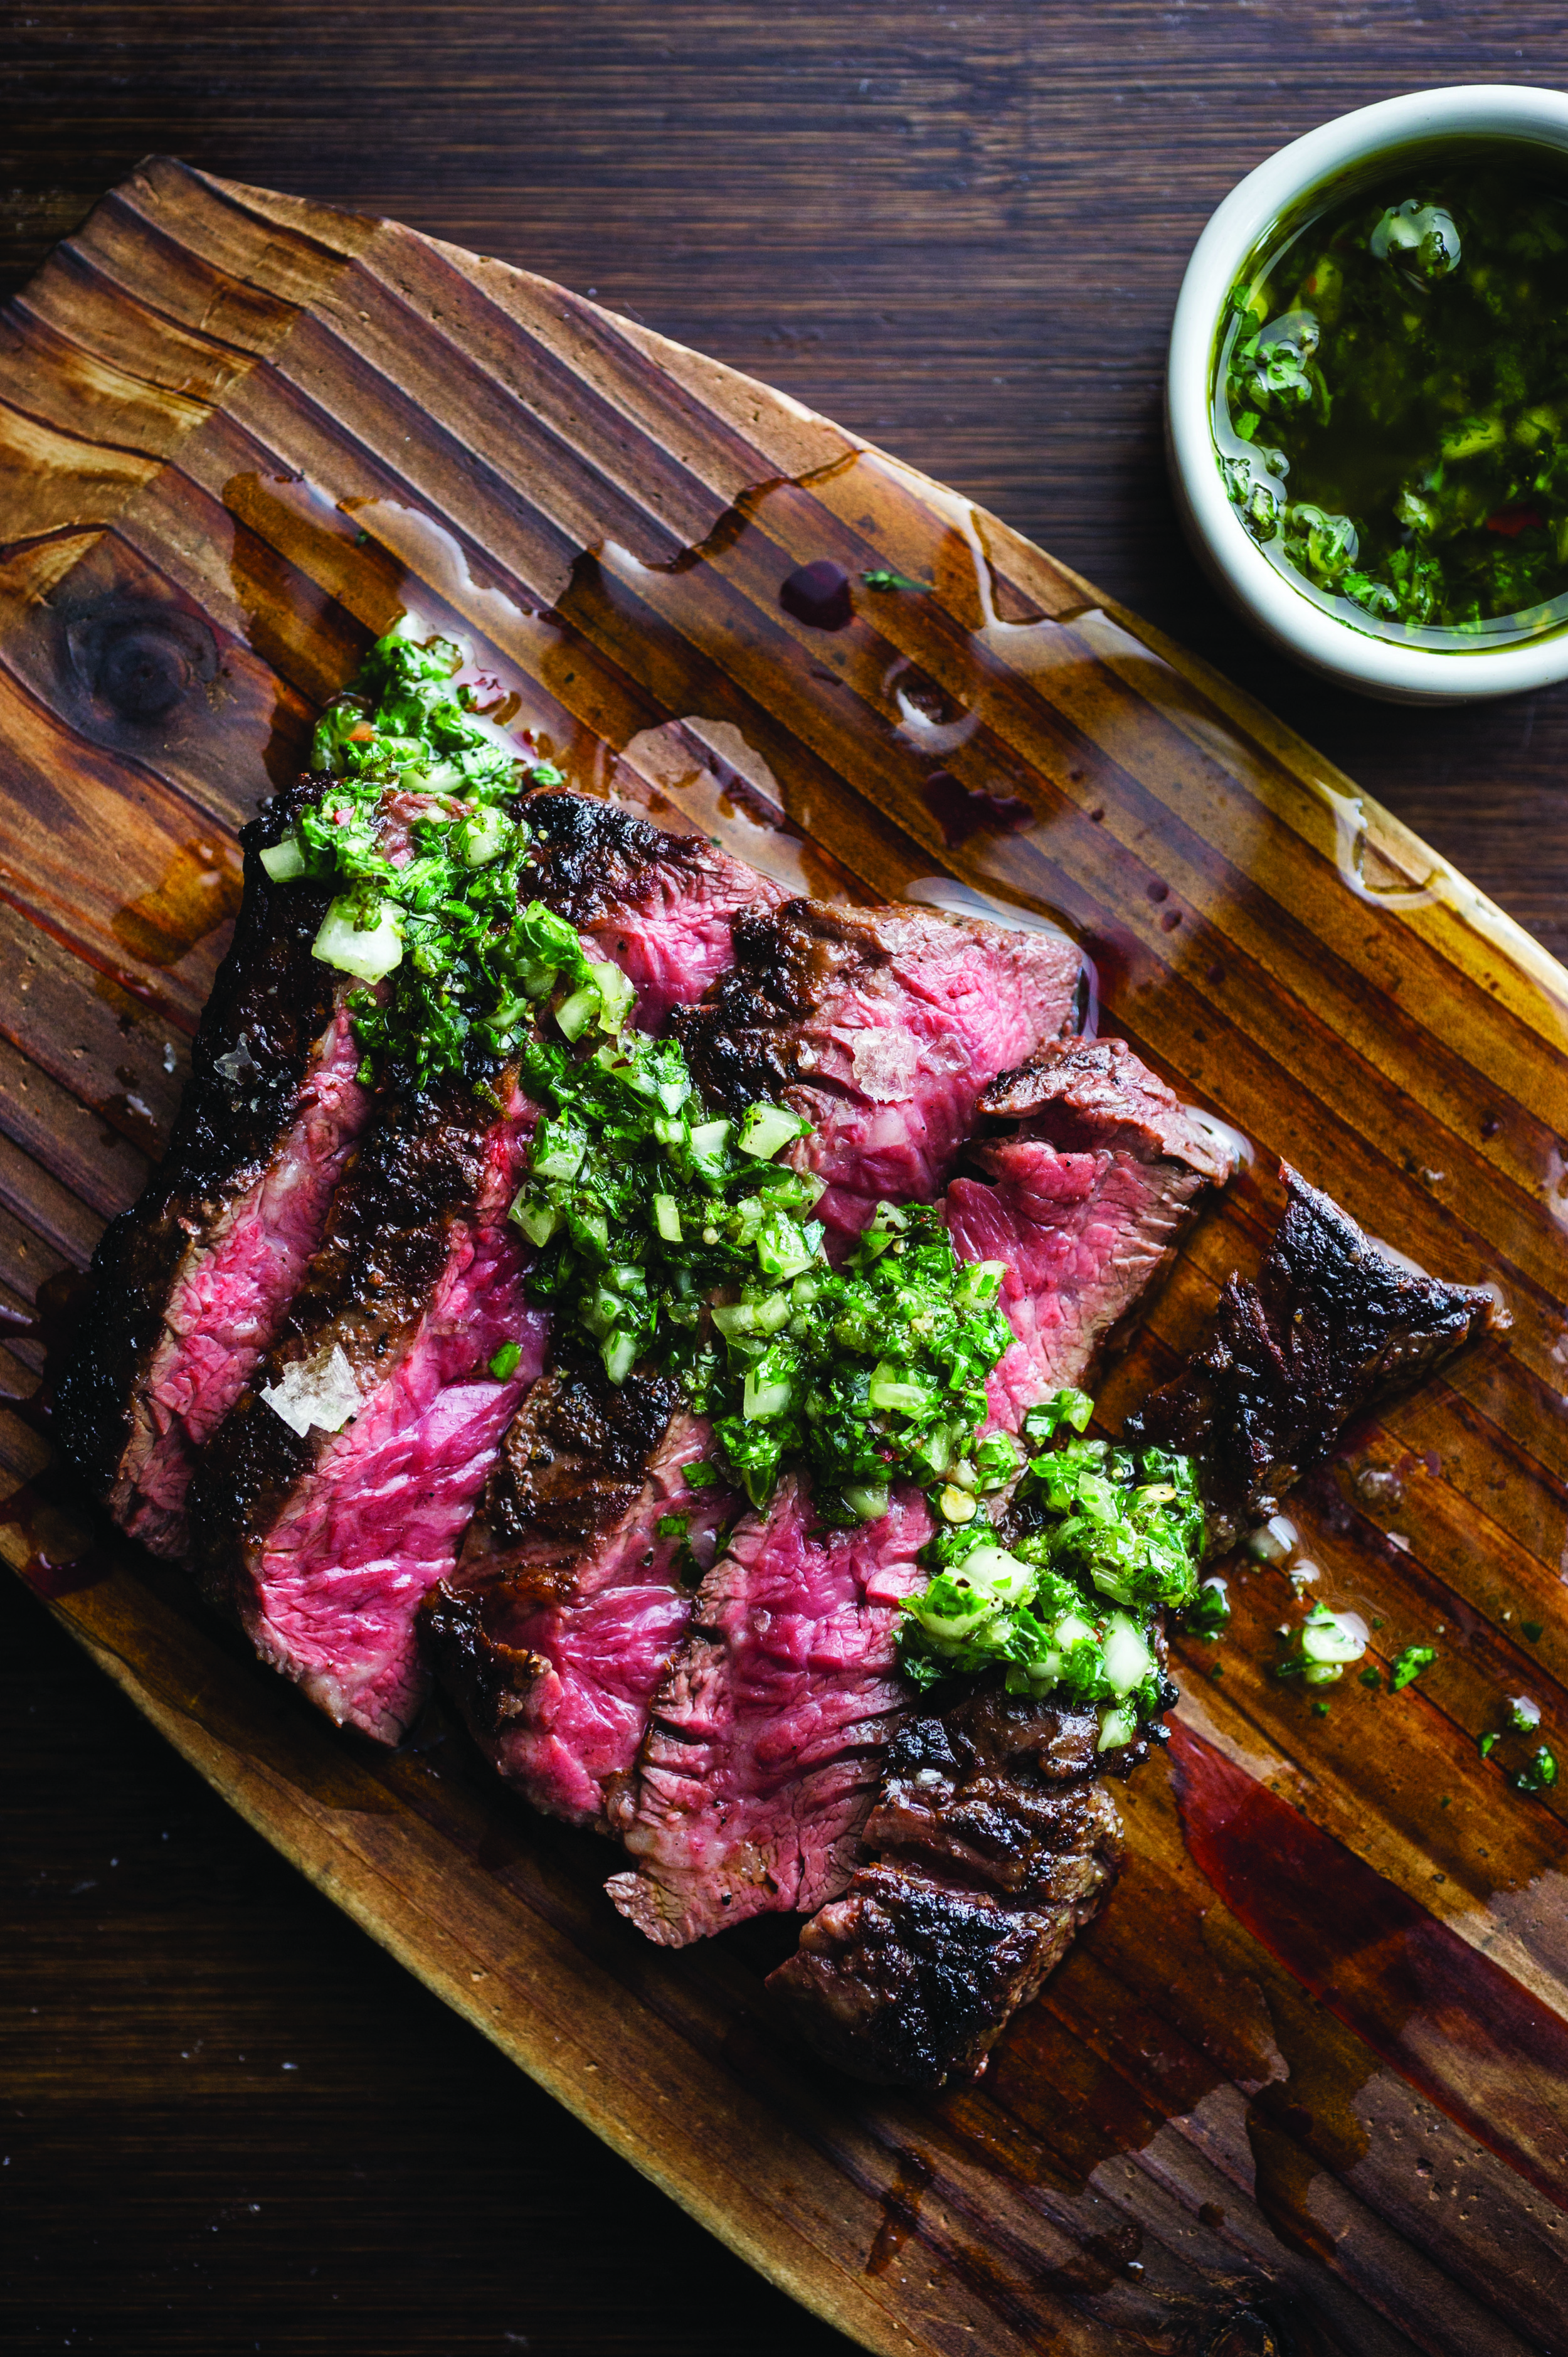 Grilled Skirt Steak with Onion Marmalade (photo by Evan Sung)